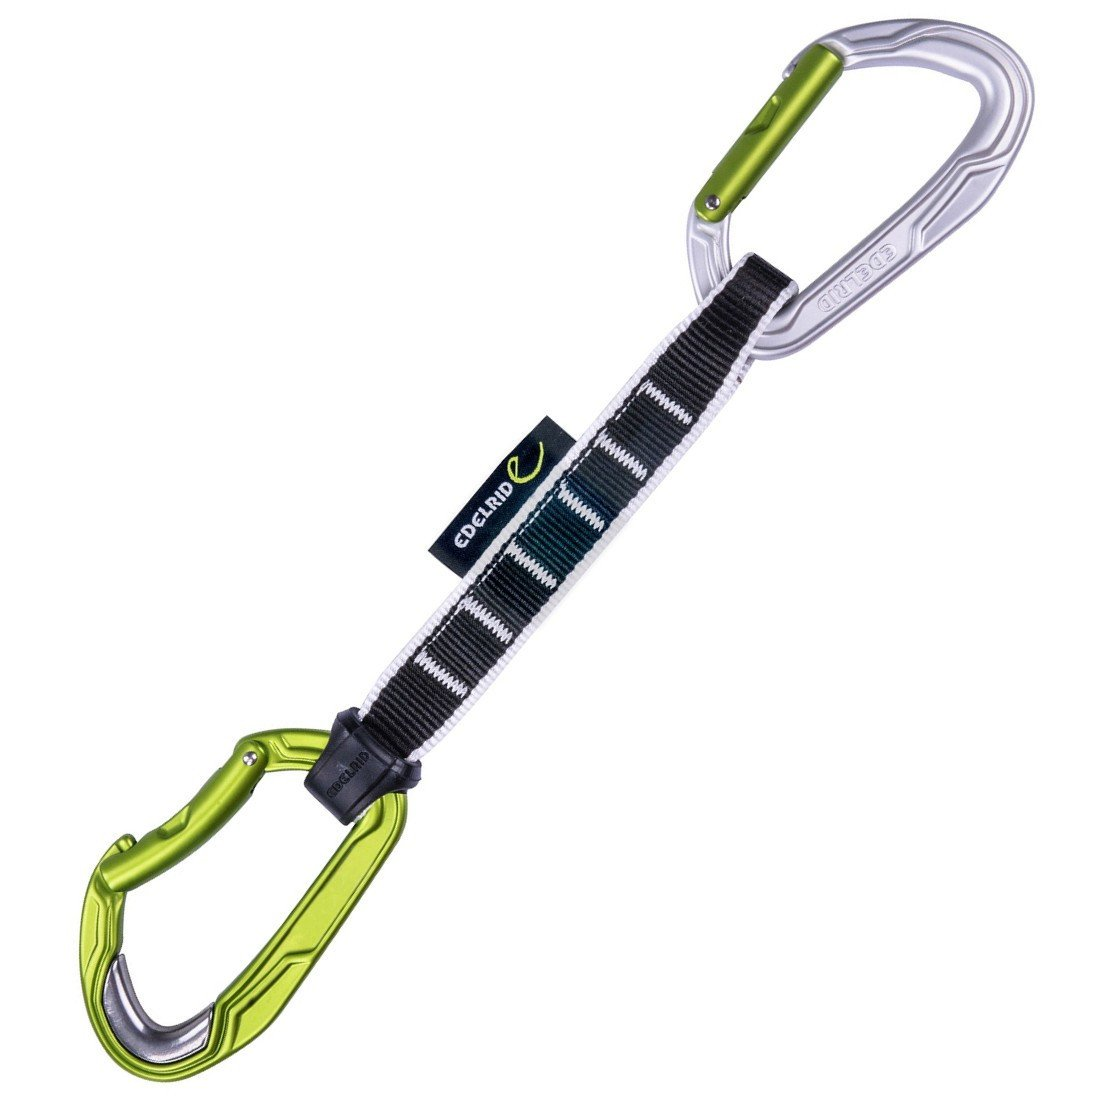 Edelrid Bulletproof Quickdraw 18cm, with black sling and silver/green carabiners